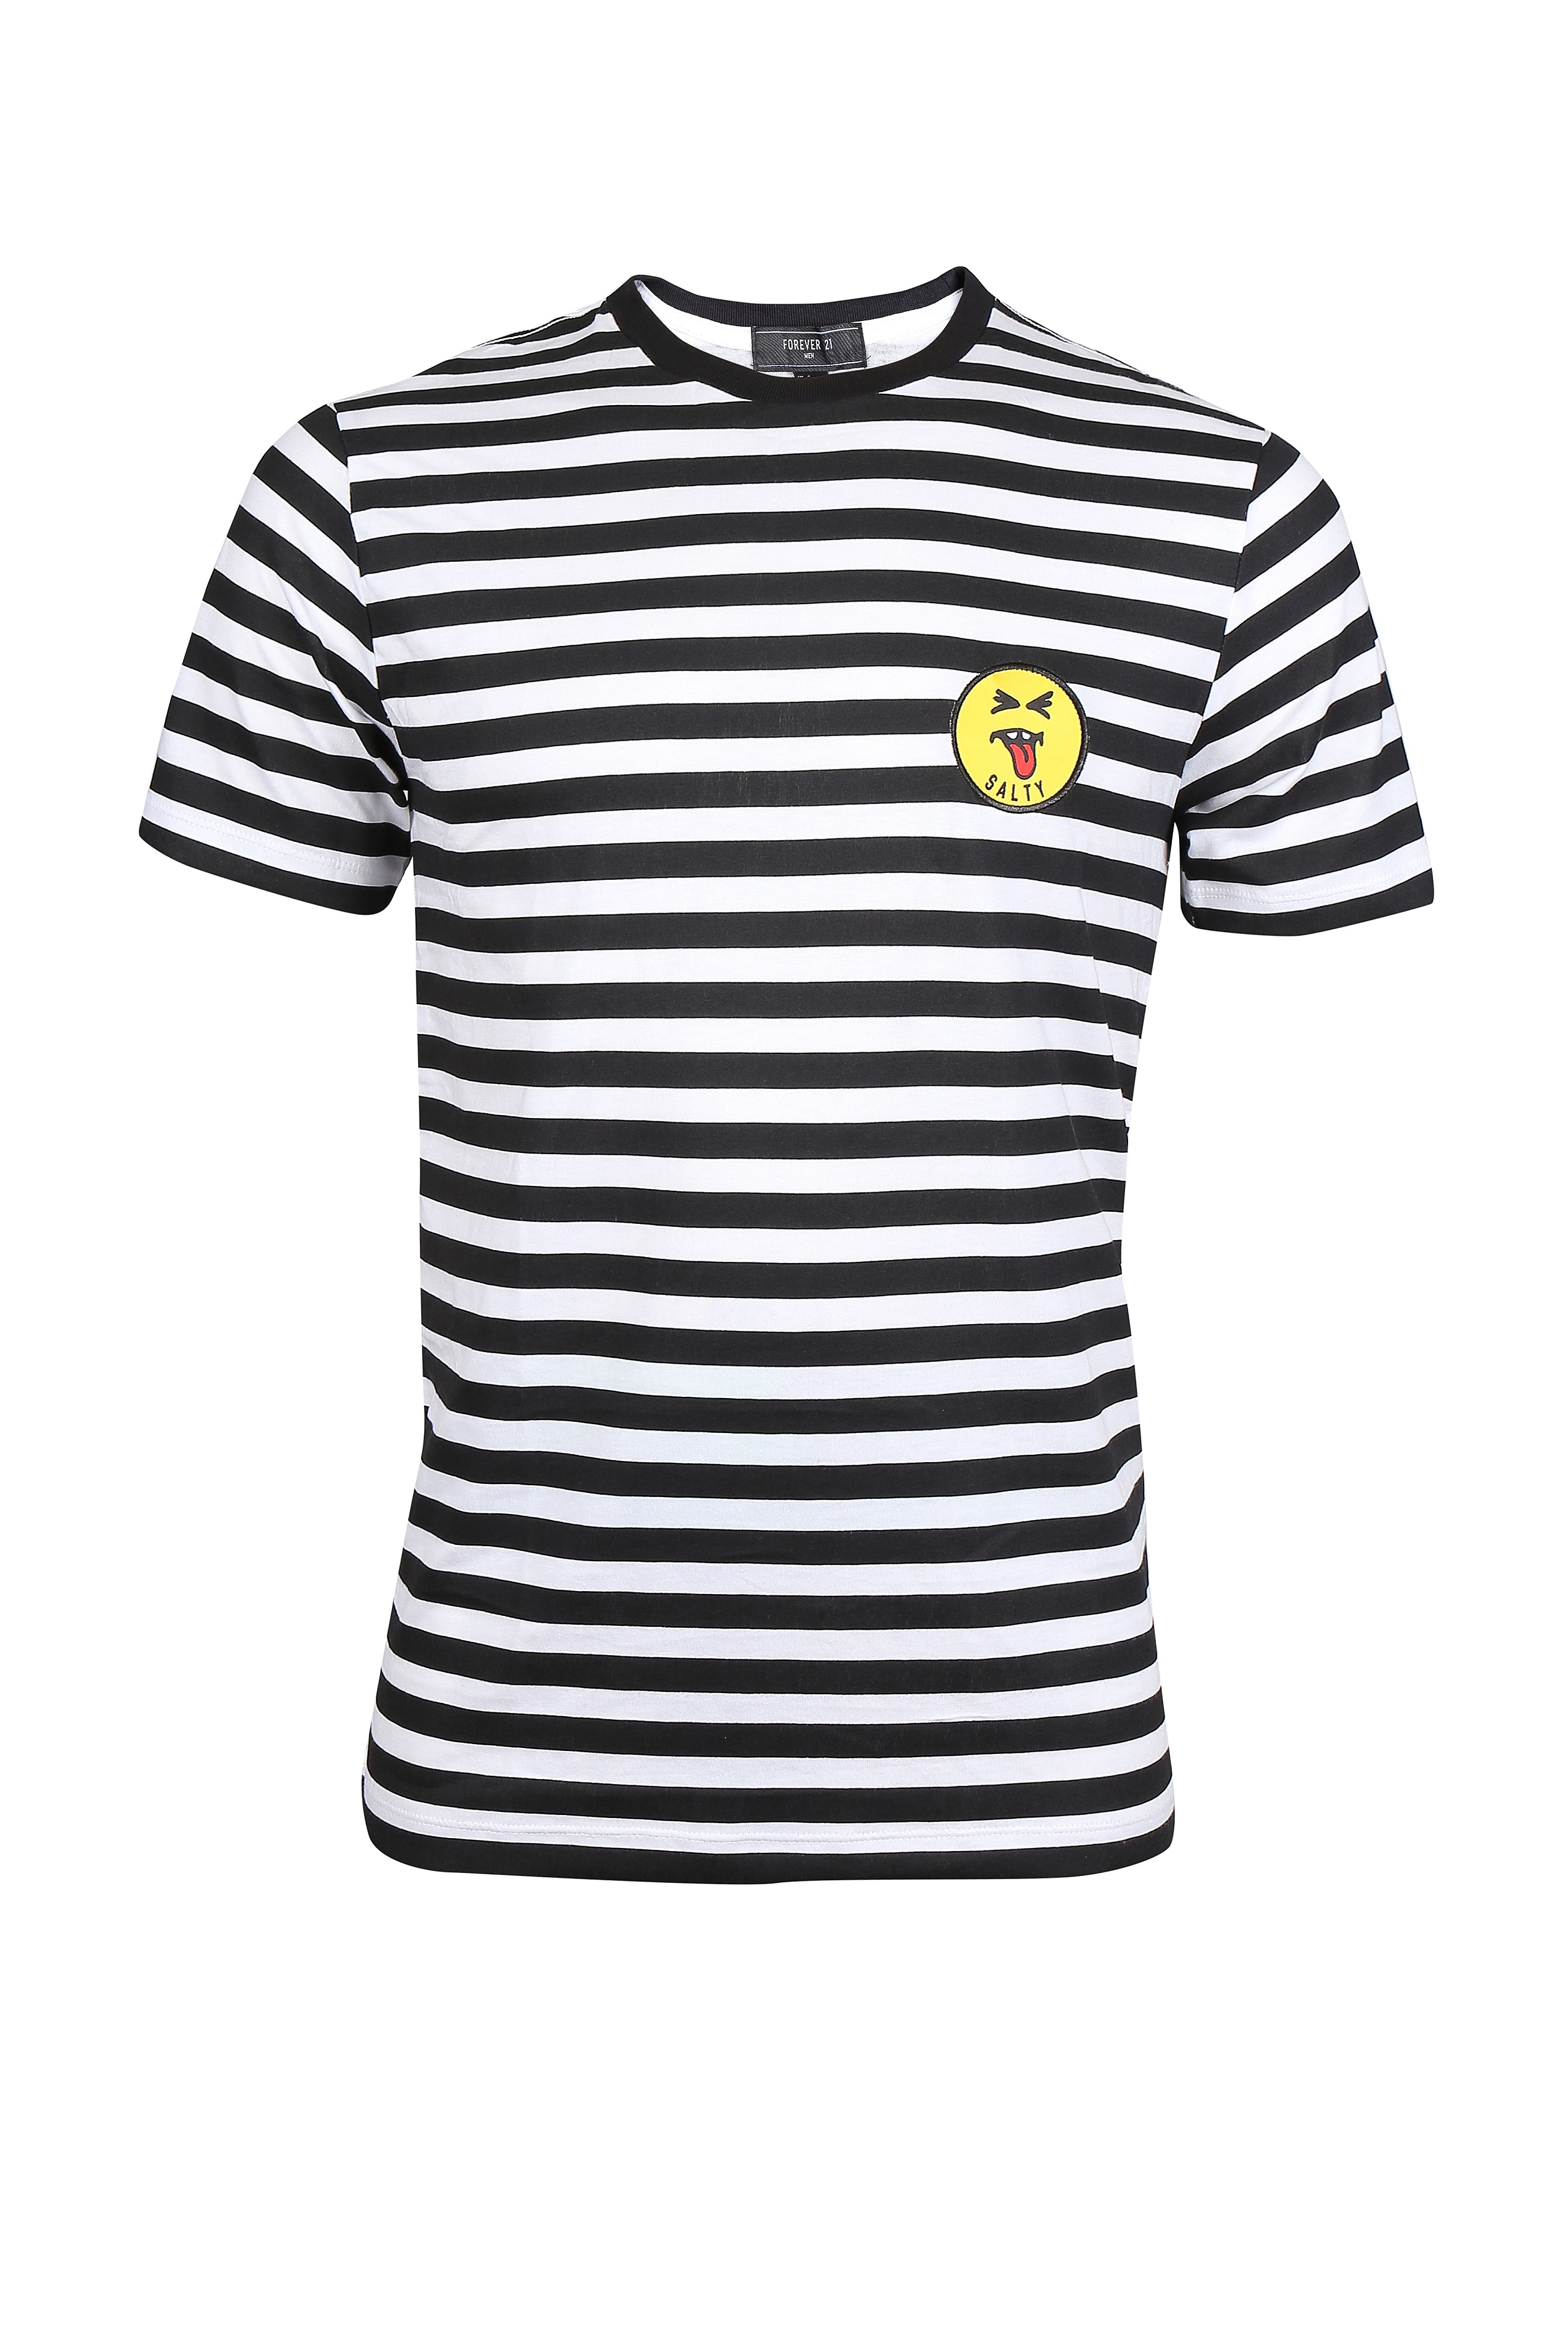 Blue and white striped tee for men - Rs. 799